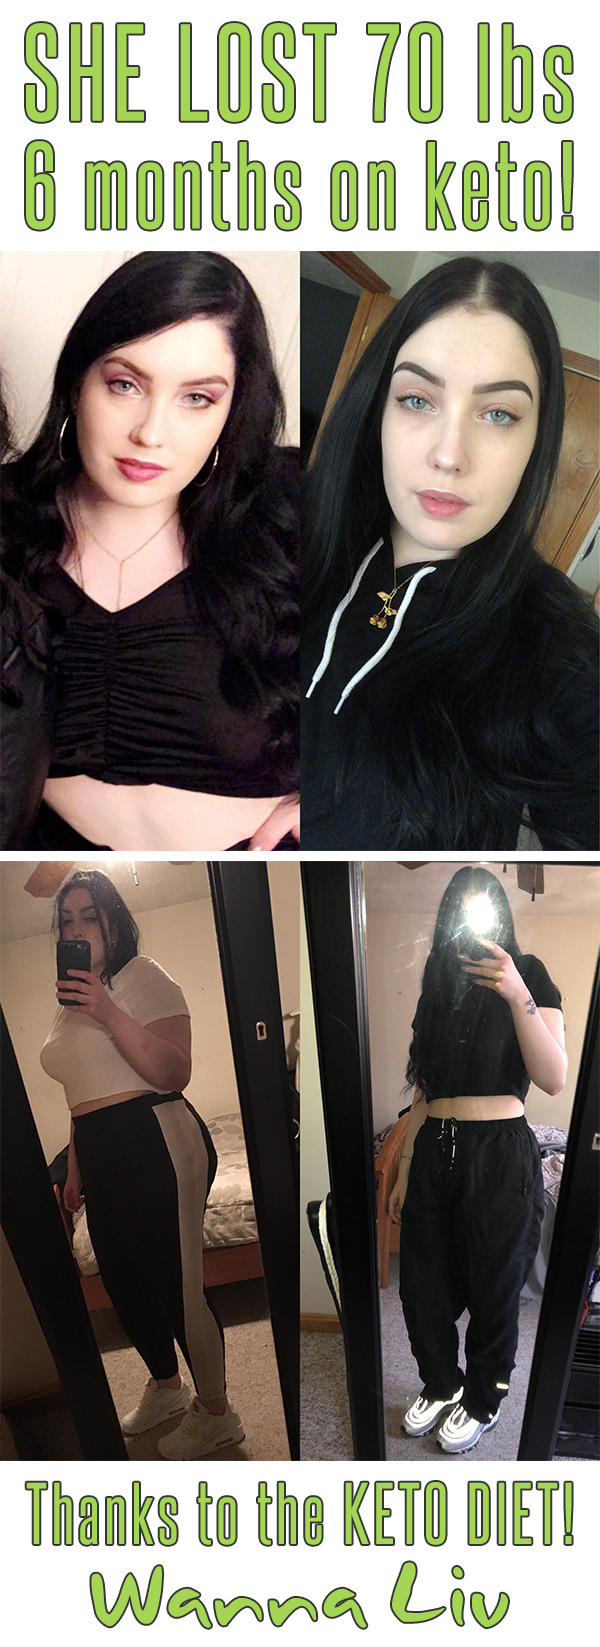 SHE LOST 70 lbs 6 months on keto! Thanks to the KETO DIET! - Keto Success Stories #9 via Wanna Liv